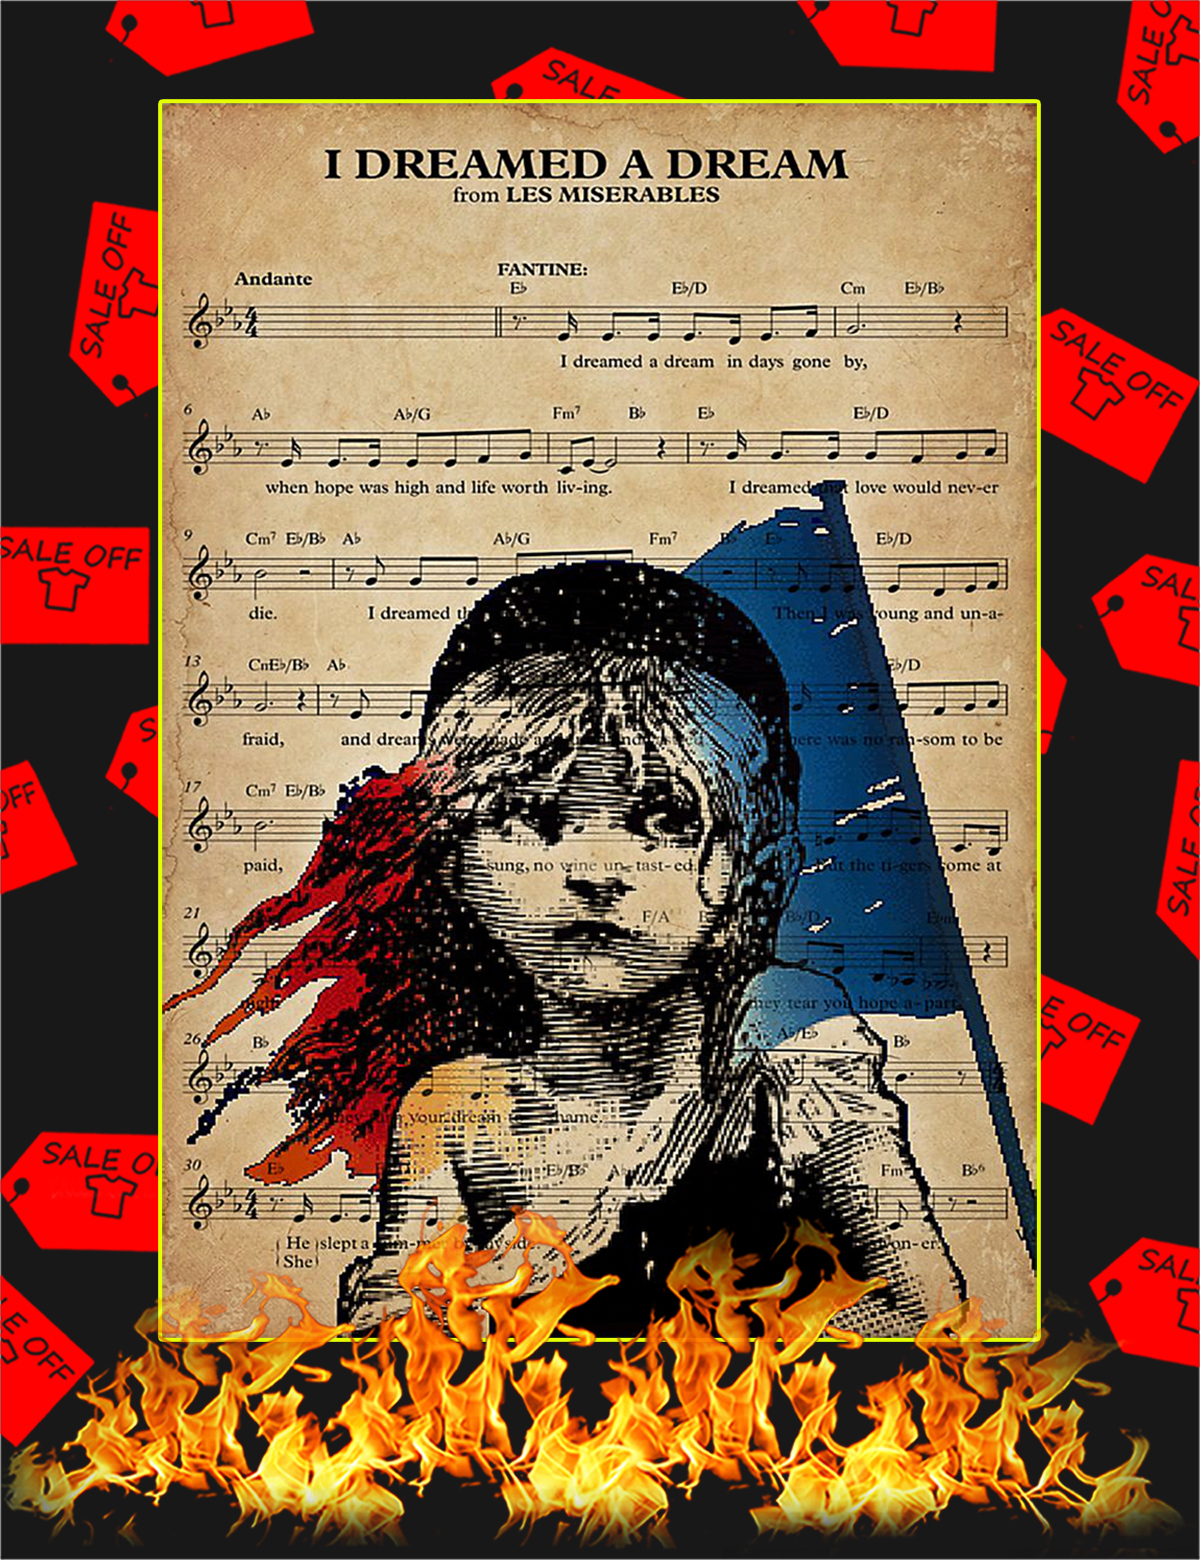 I dreamed a dream from les miserables poster - A1